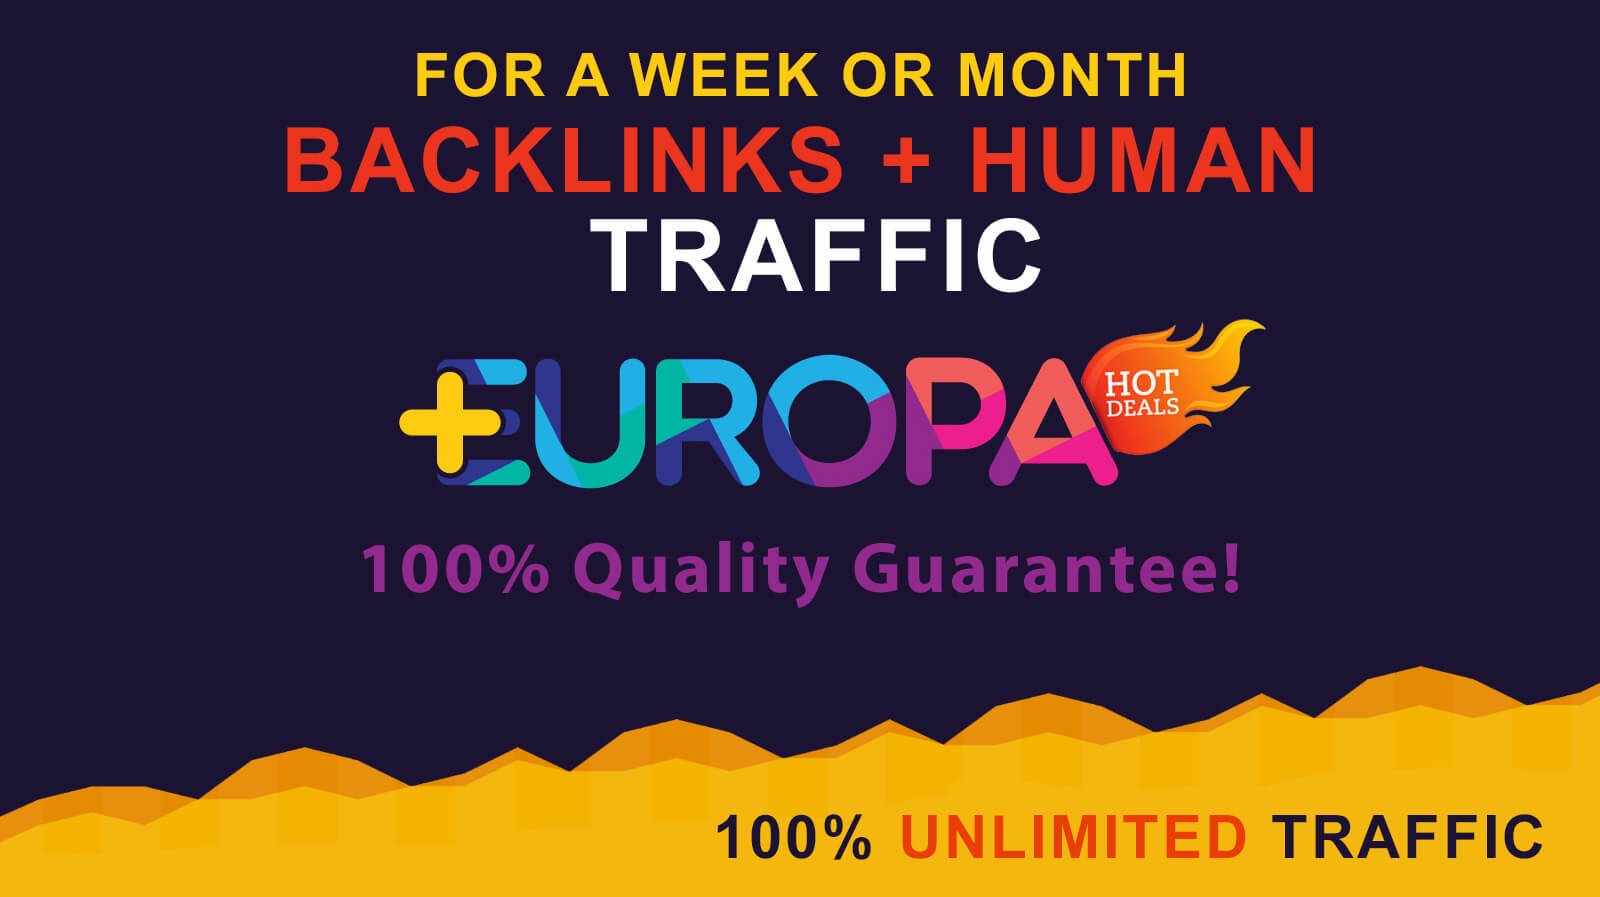 UNLIMITED BACKLINKS + UNLIMITED HUMAN TRAFFIC FOR A WEEK OR MONTH PLUS BONUS